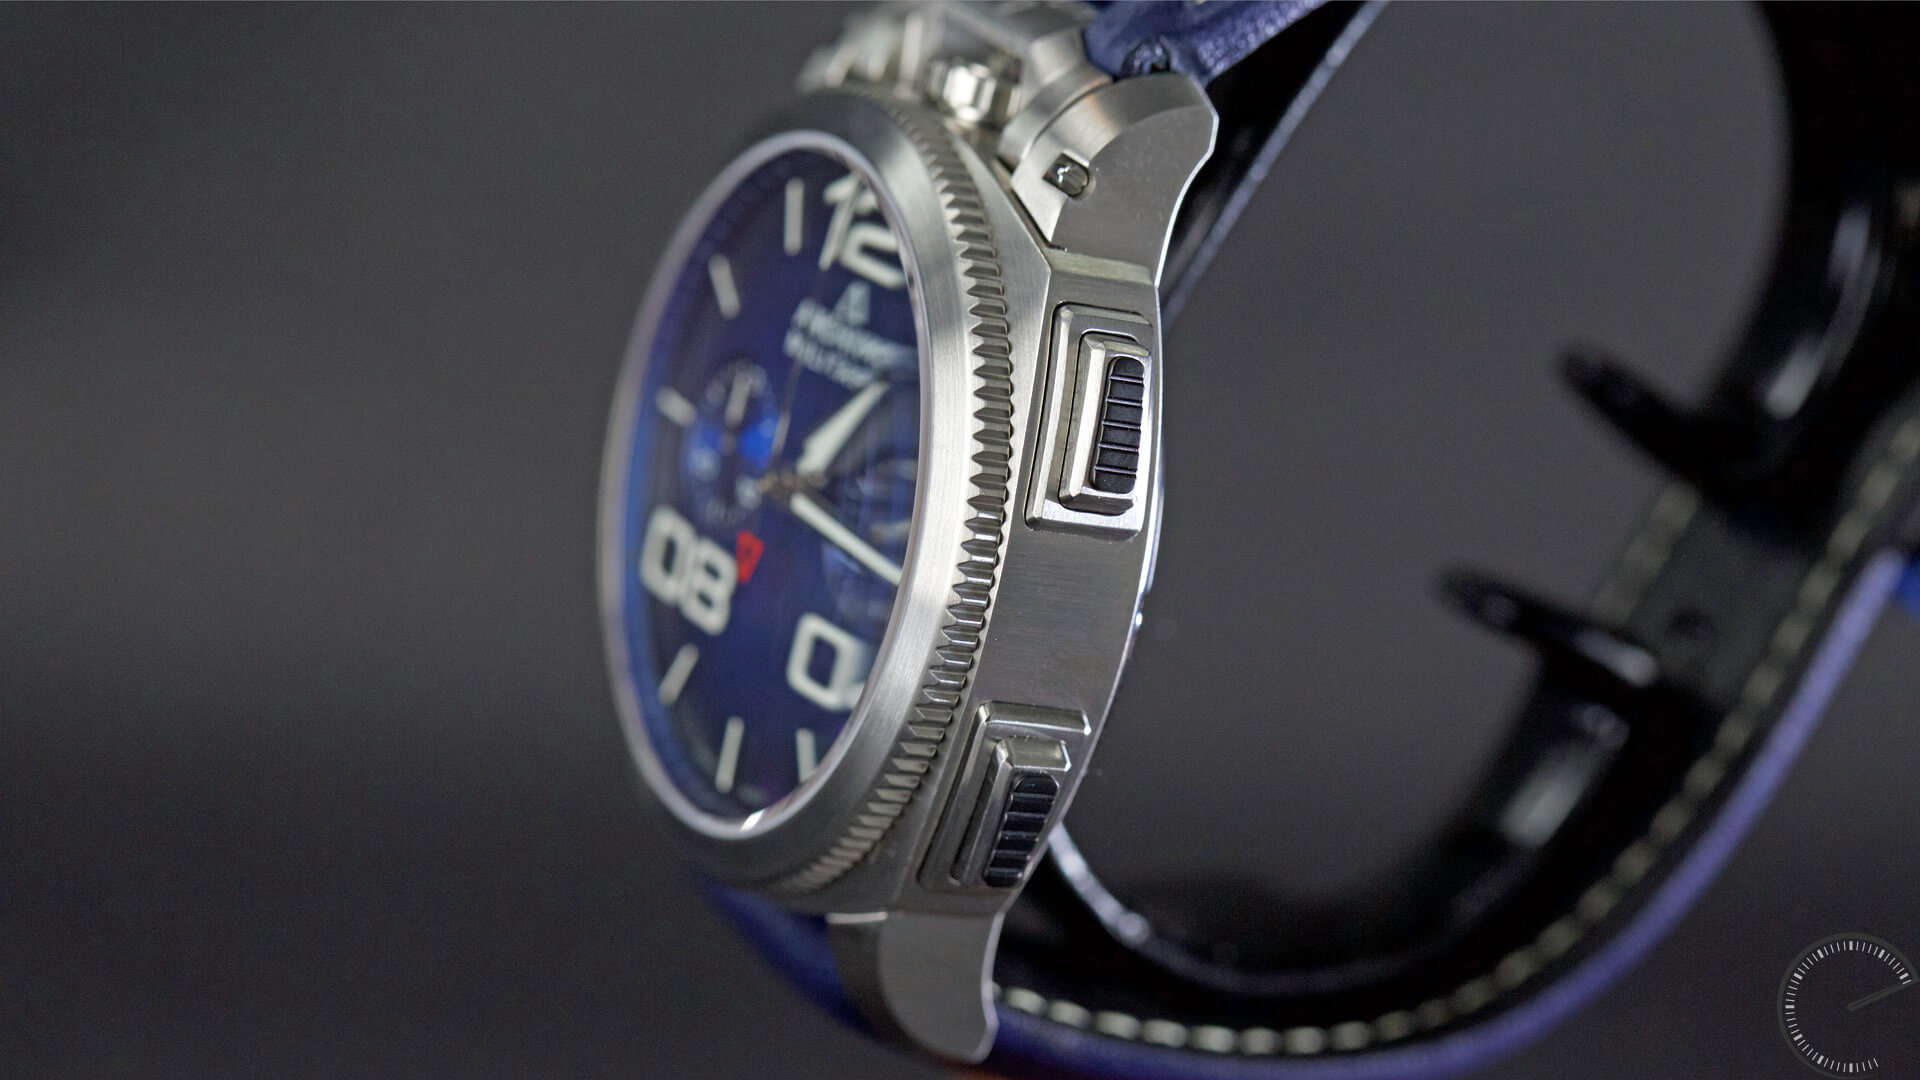 Anonimo_Militaire_Classic_Chrono_blue_dial_pushpieces - ESCAPEMENT magazine - watch reviews by Angus Davies